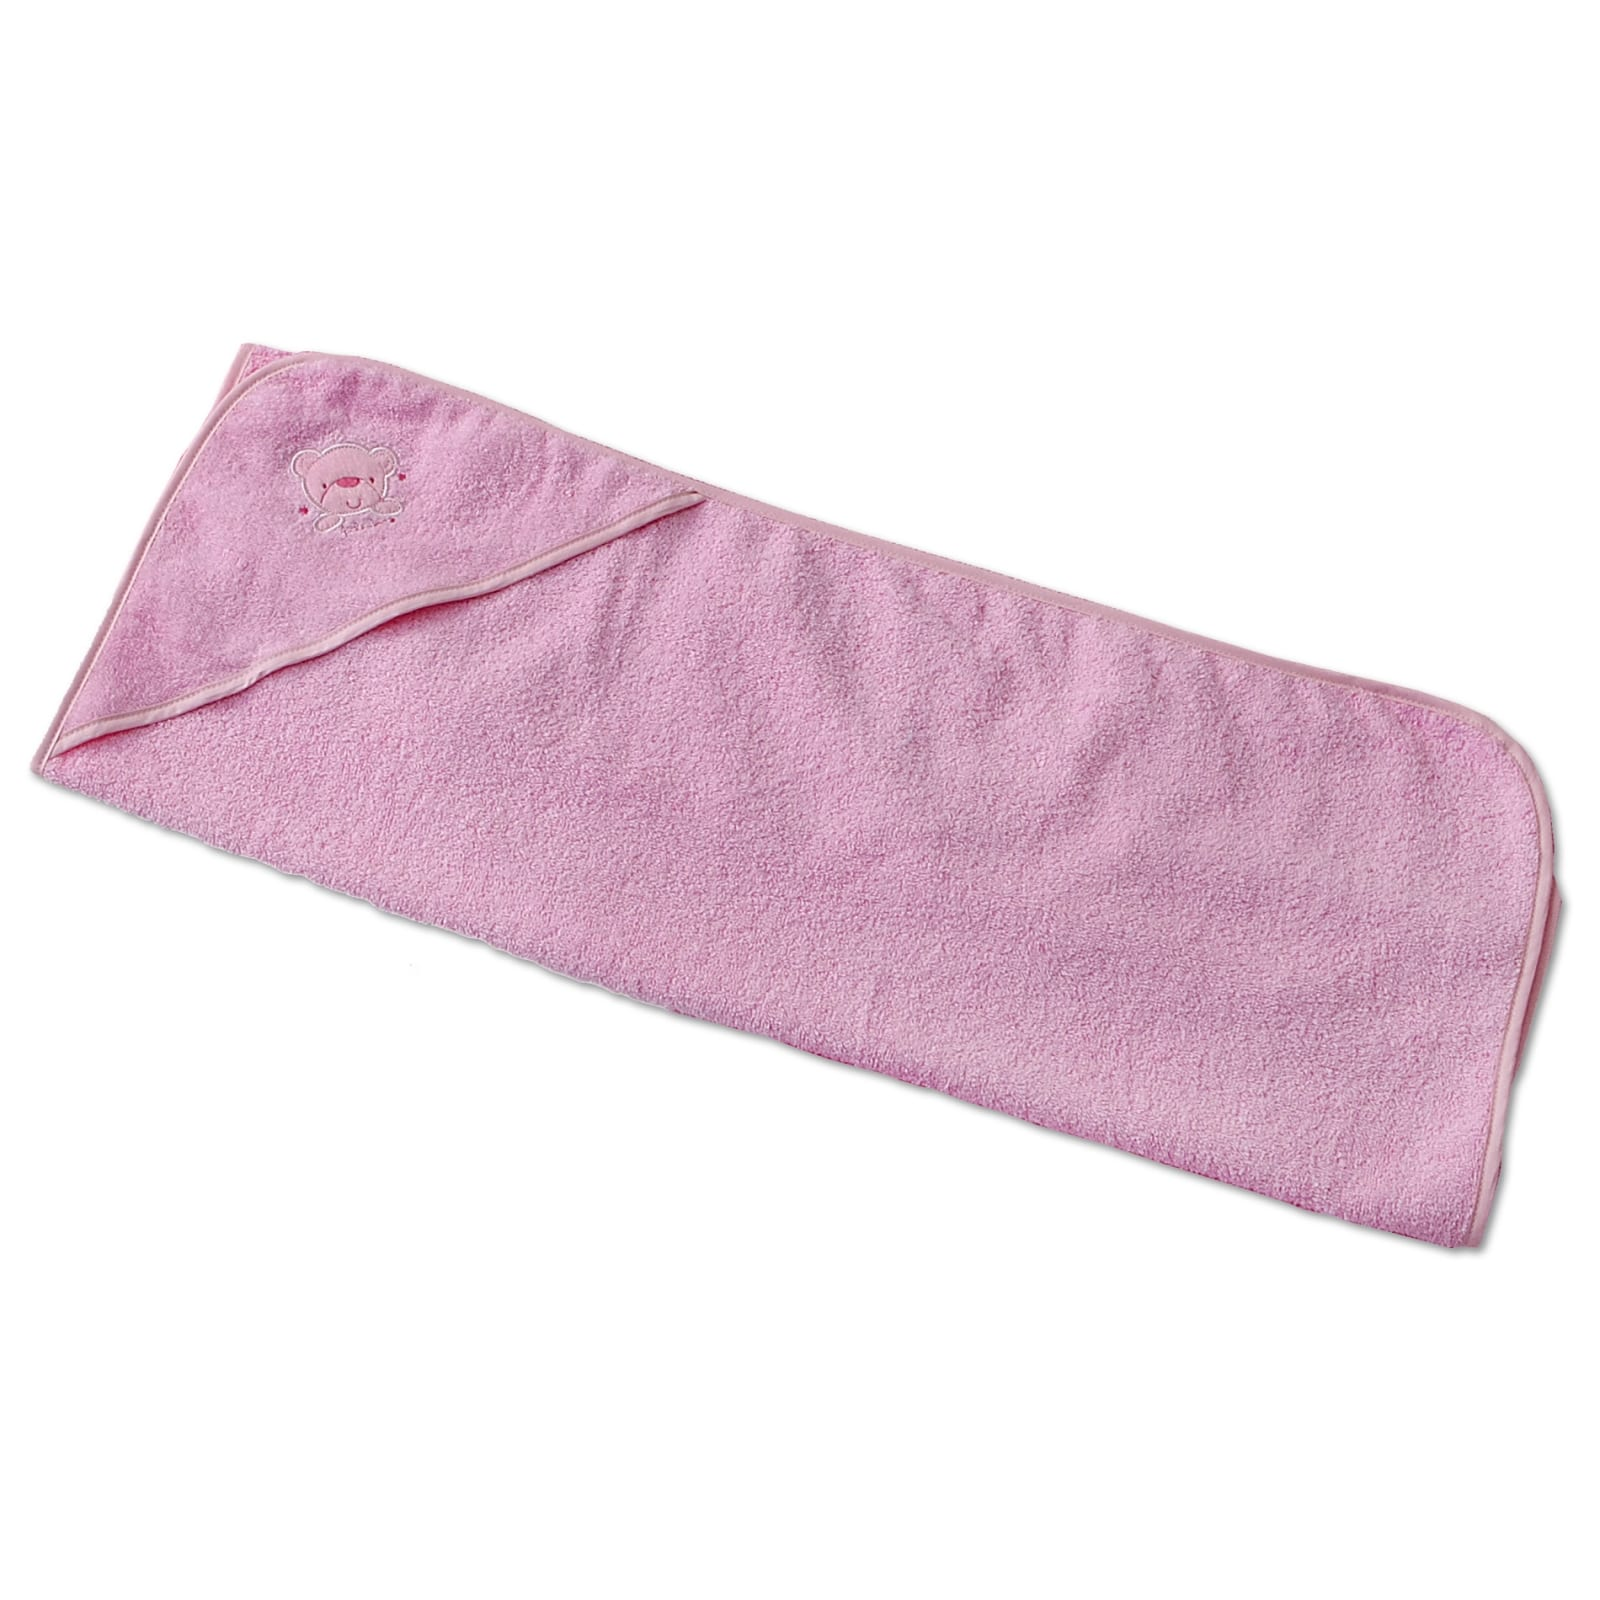 Hooded Towel – Pink product image